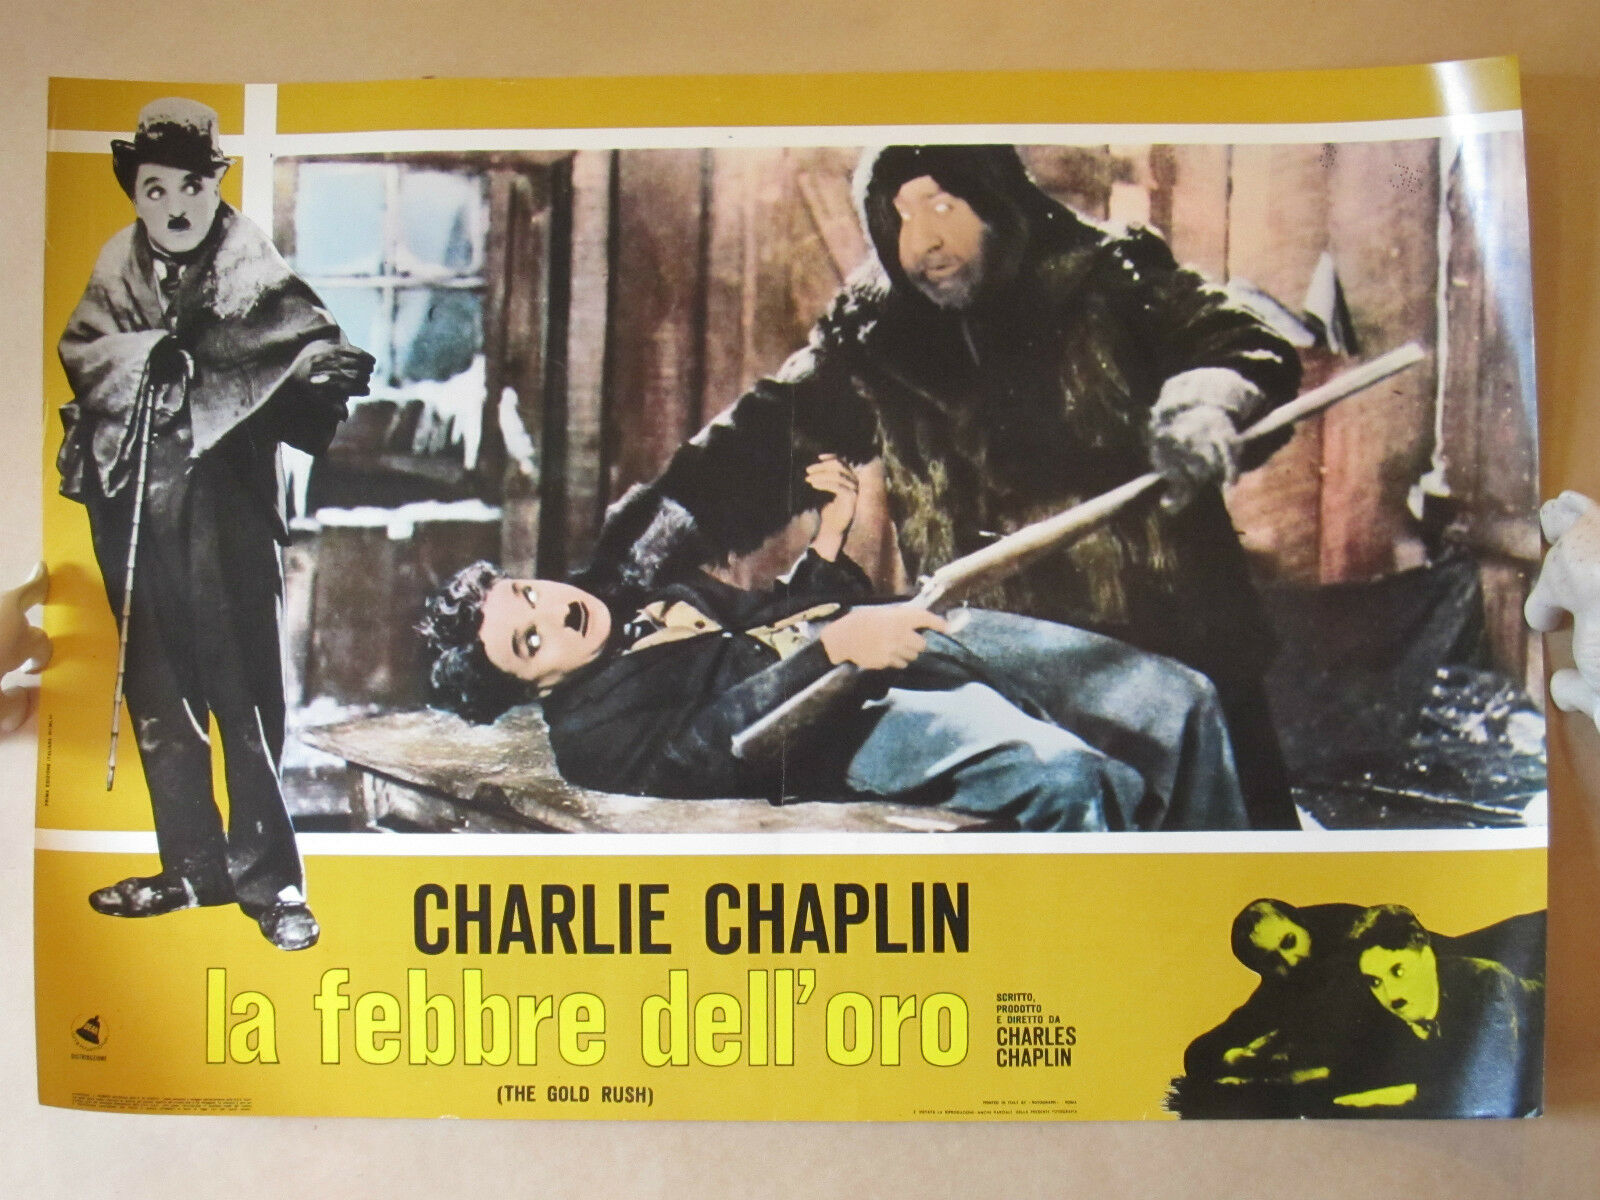 the successful career of charlie chaplin Charlie chaplin, his wife oona chaplin, and their first two children, geraldine and michael, in march 1946 charlie's professional success in films was tempered by much unhappiness and controversy in his personal life.